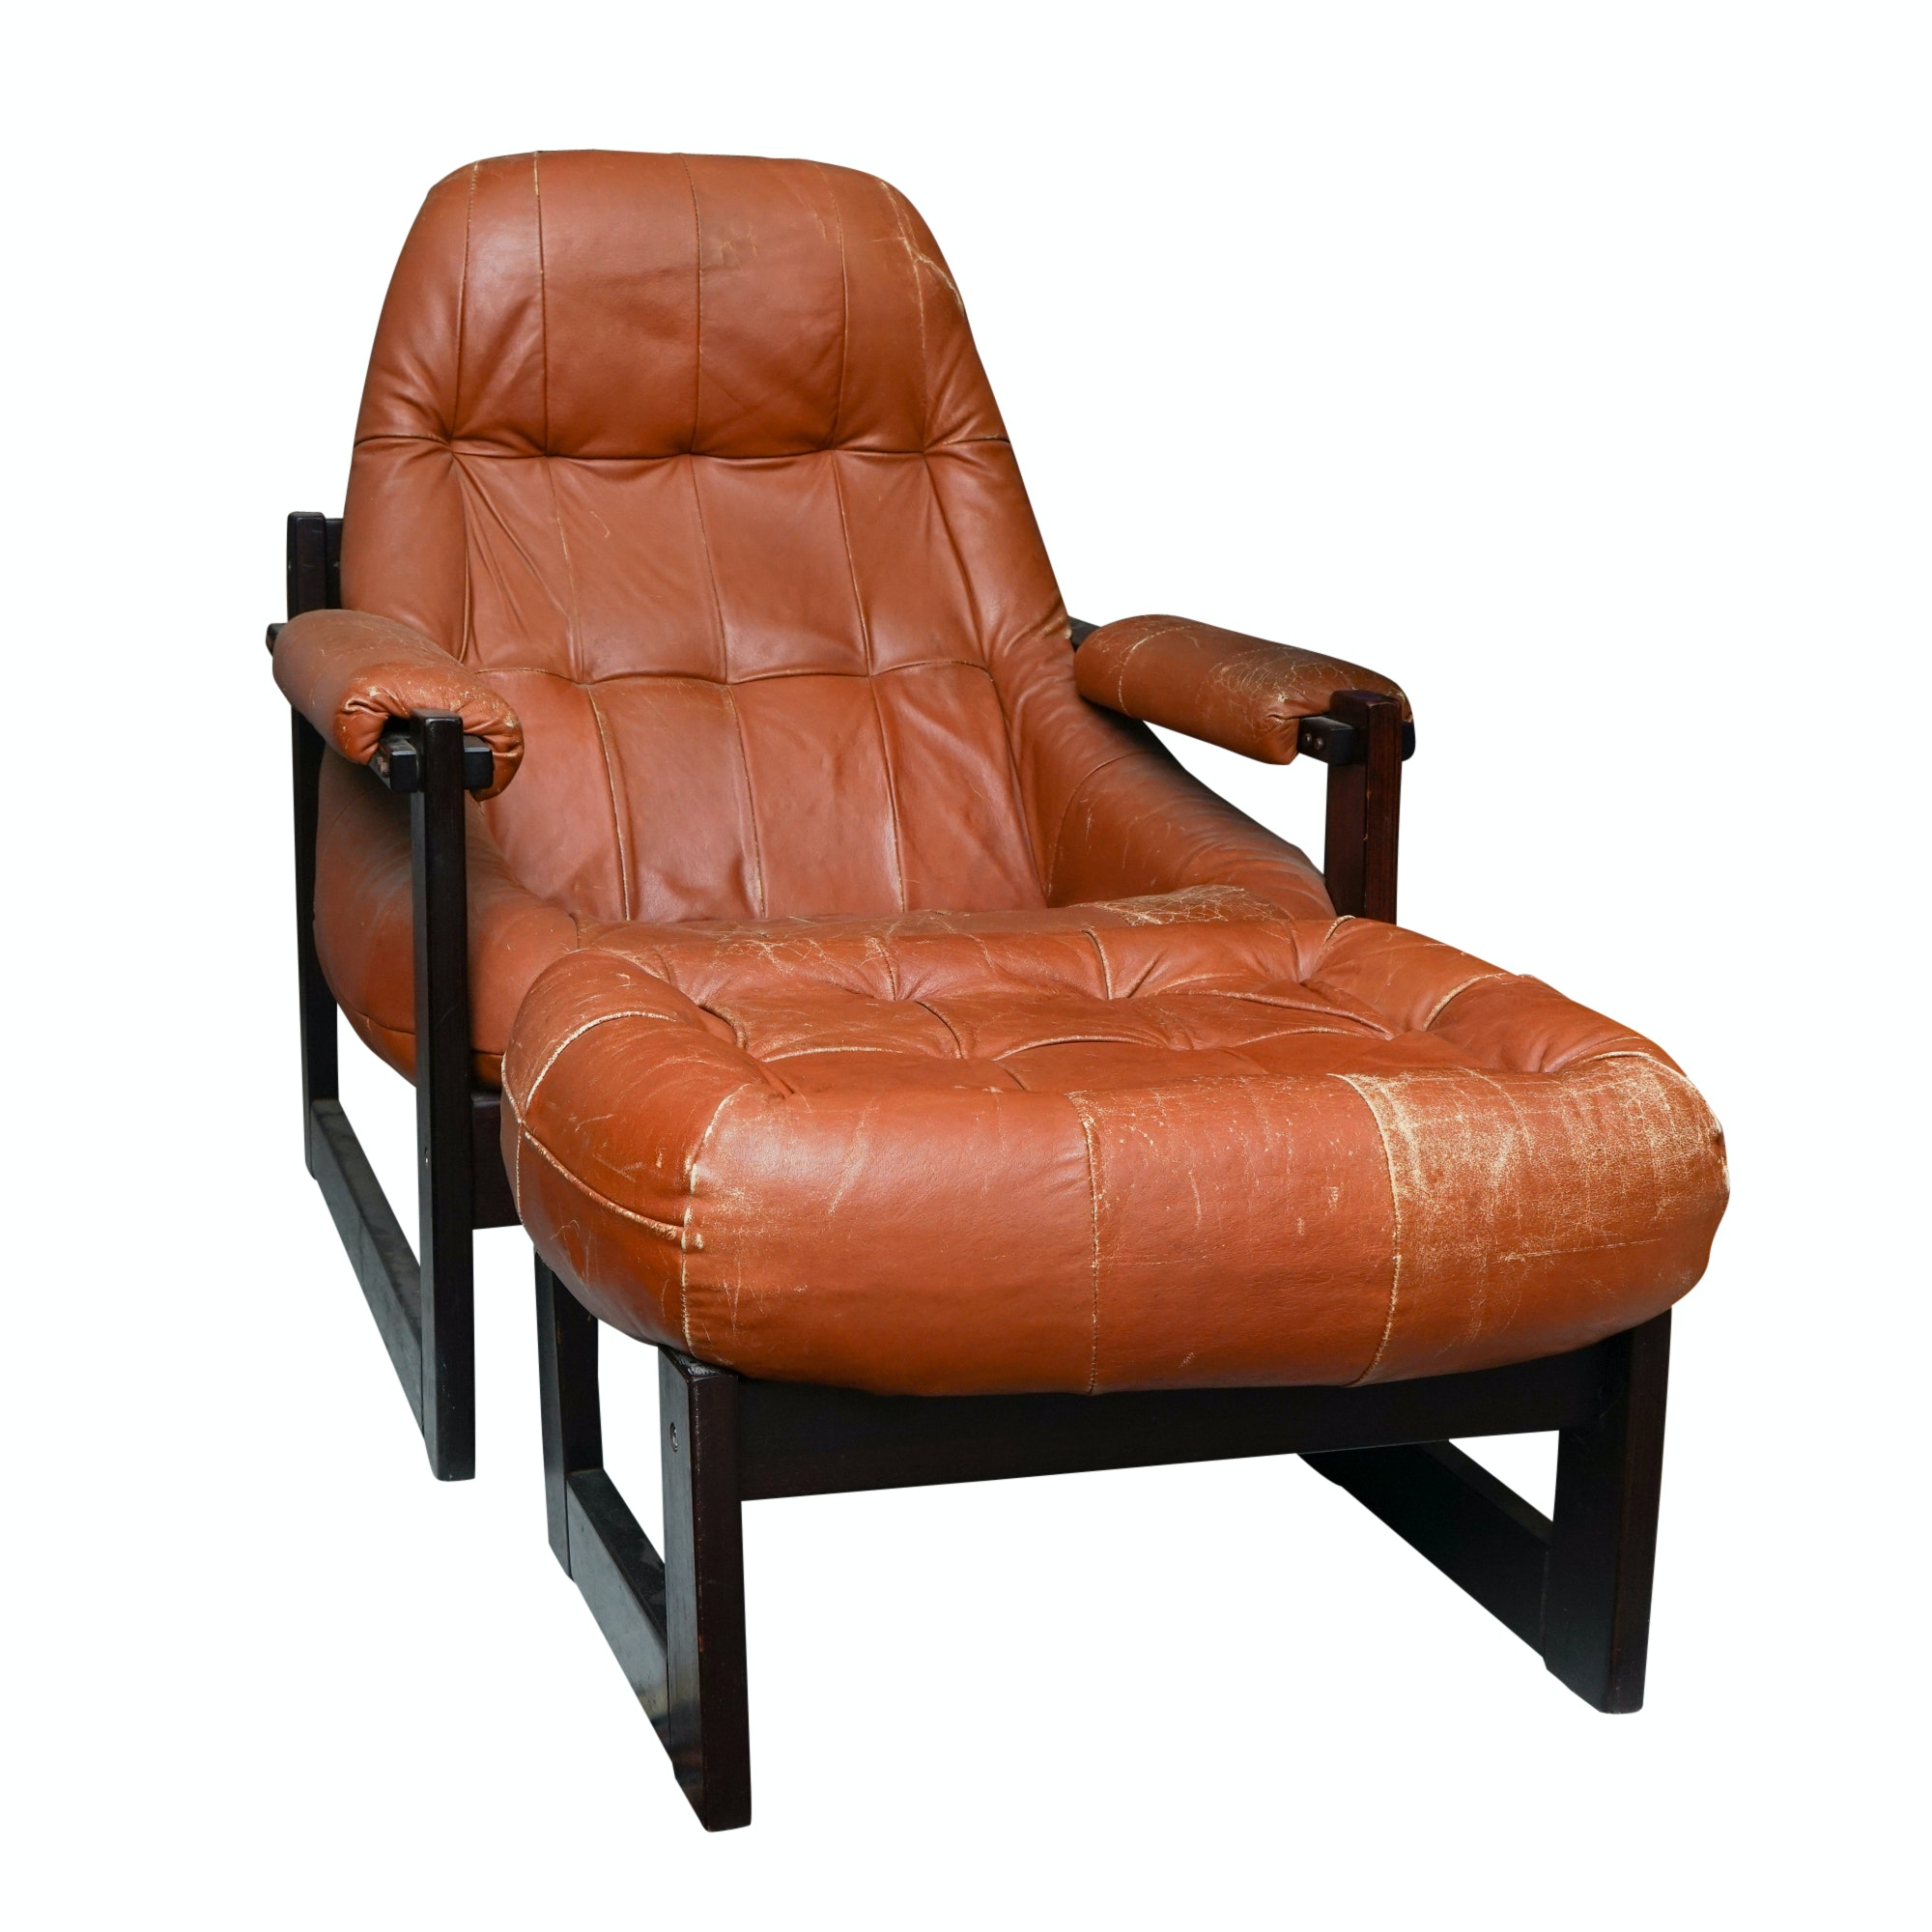 Percival Lafer Leather and Rosewood Lounge Chair and Ottoman